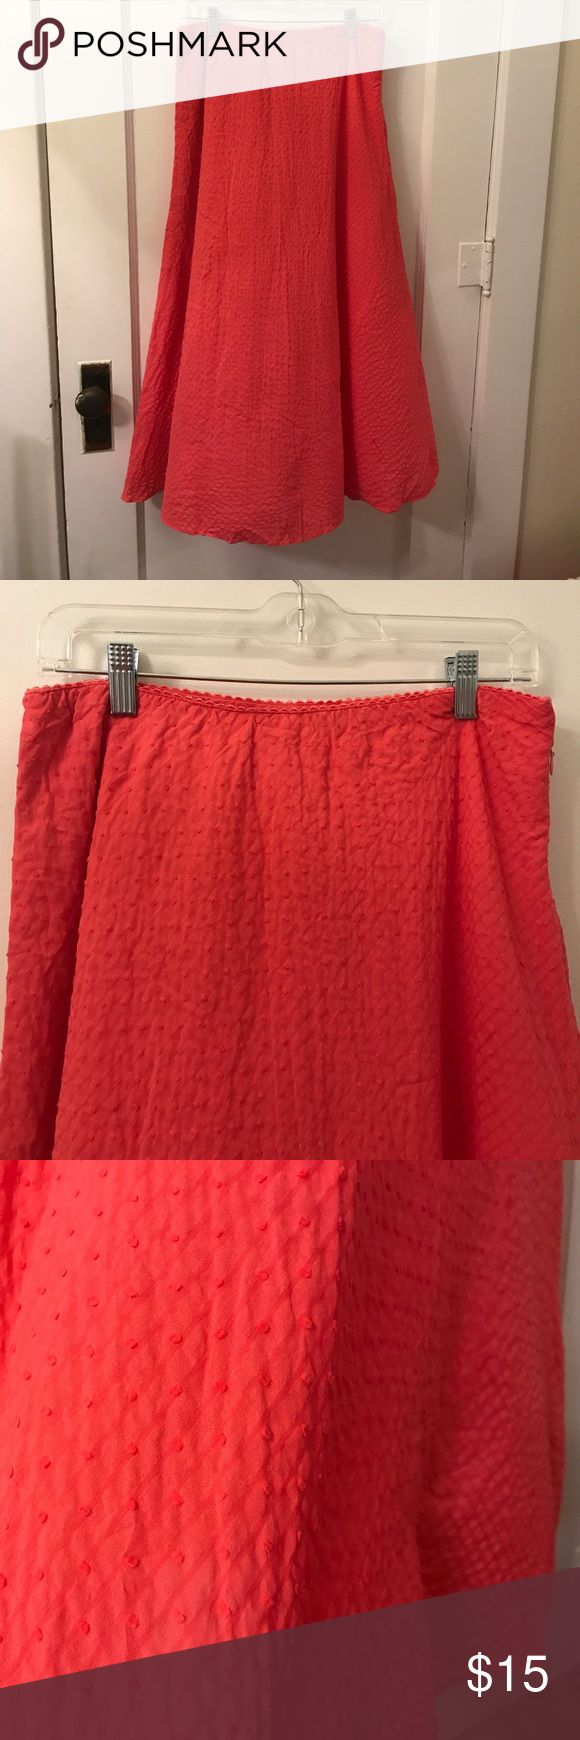 Textured Coral Maxi Skirt. 100% Cotton. Cotton Lined as well. Beautiful Coral Color. Breezy. Zips on the side. Susan Bristol Skirts Maxi